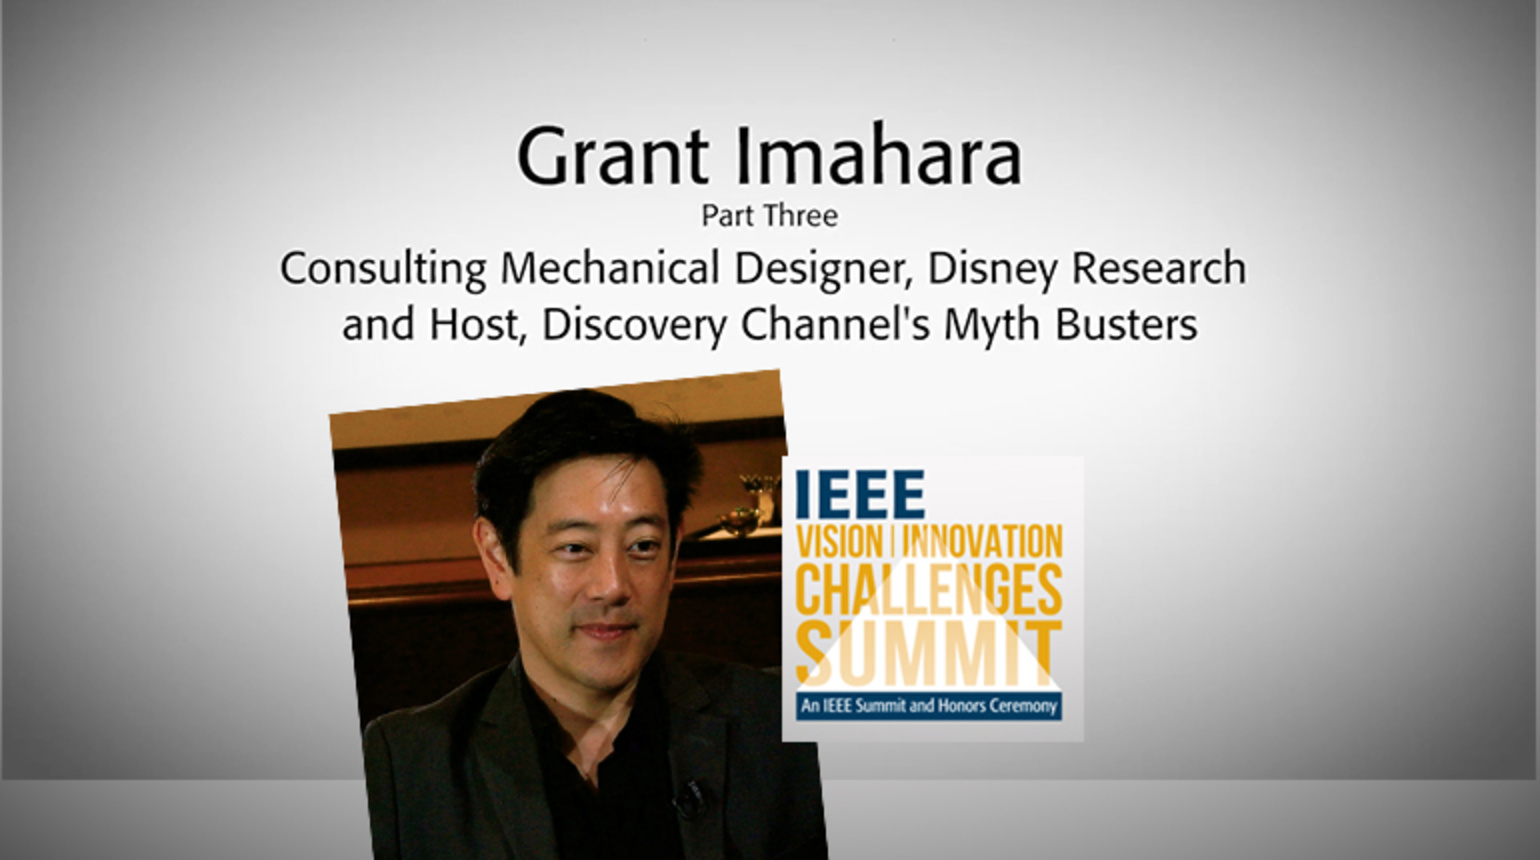 Part 3: Interview With Grant Imahara